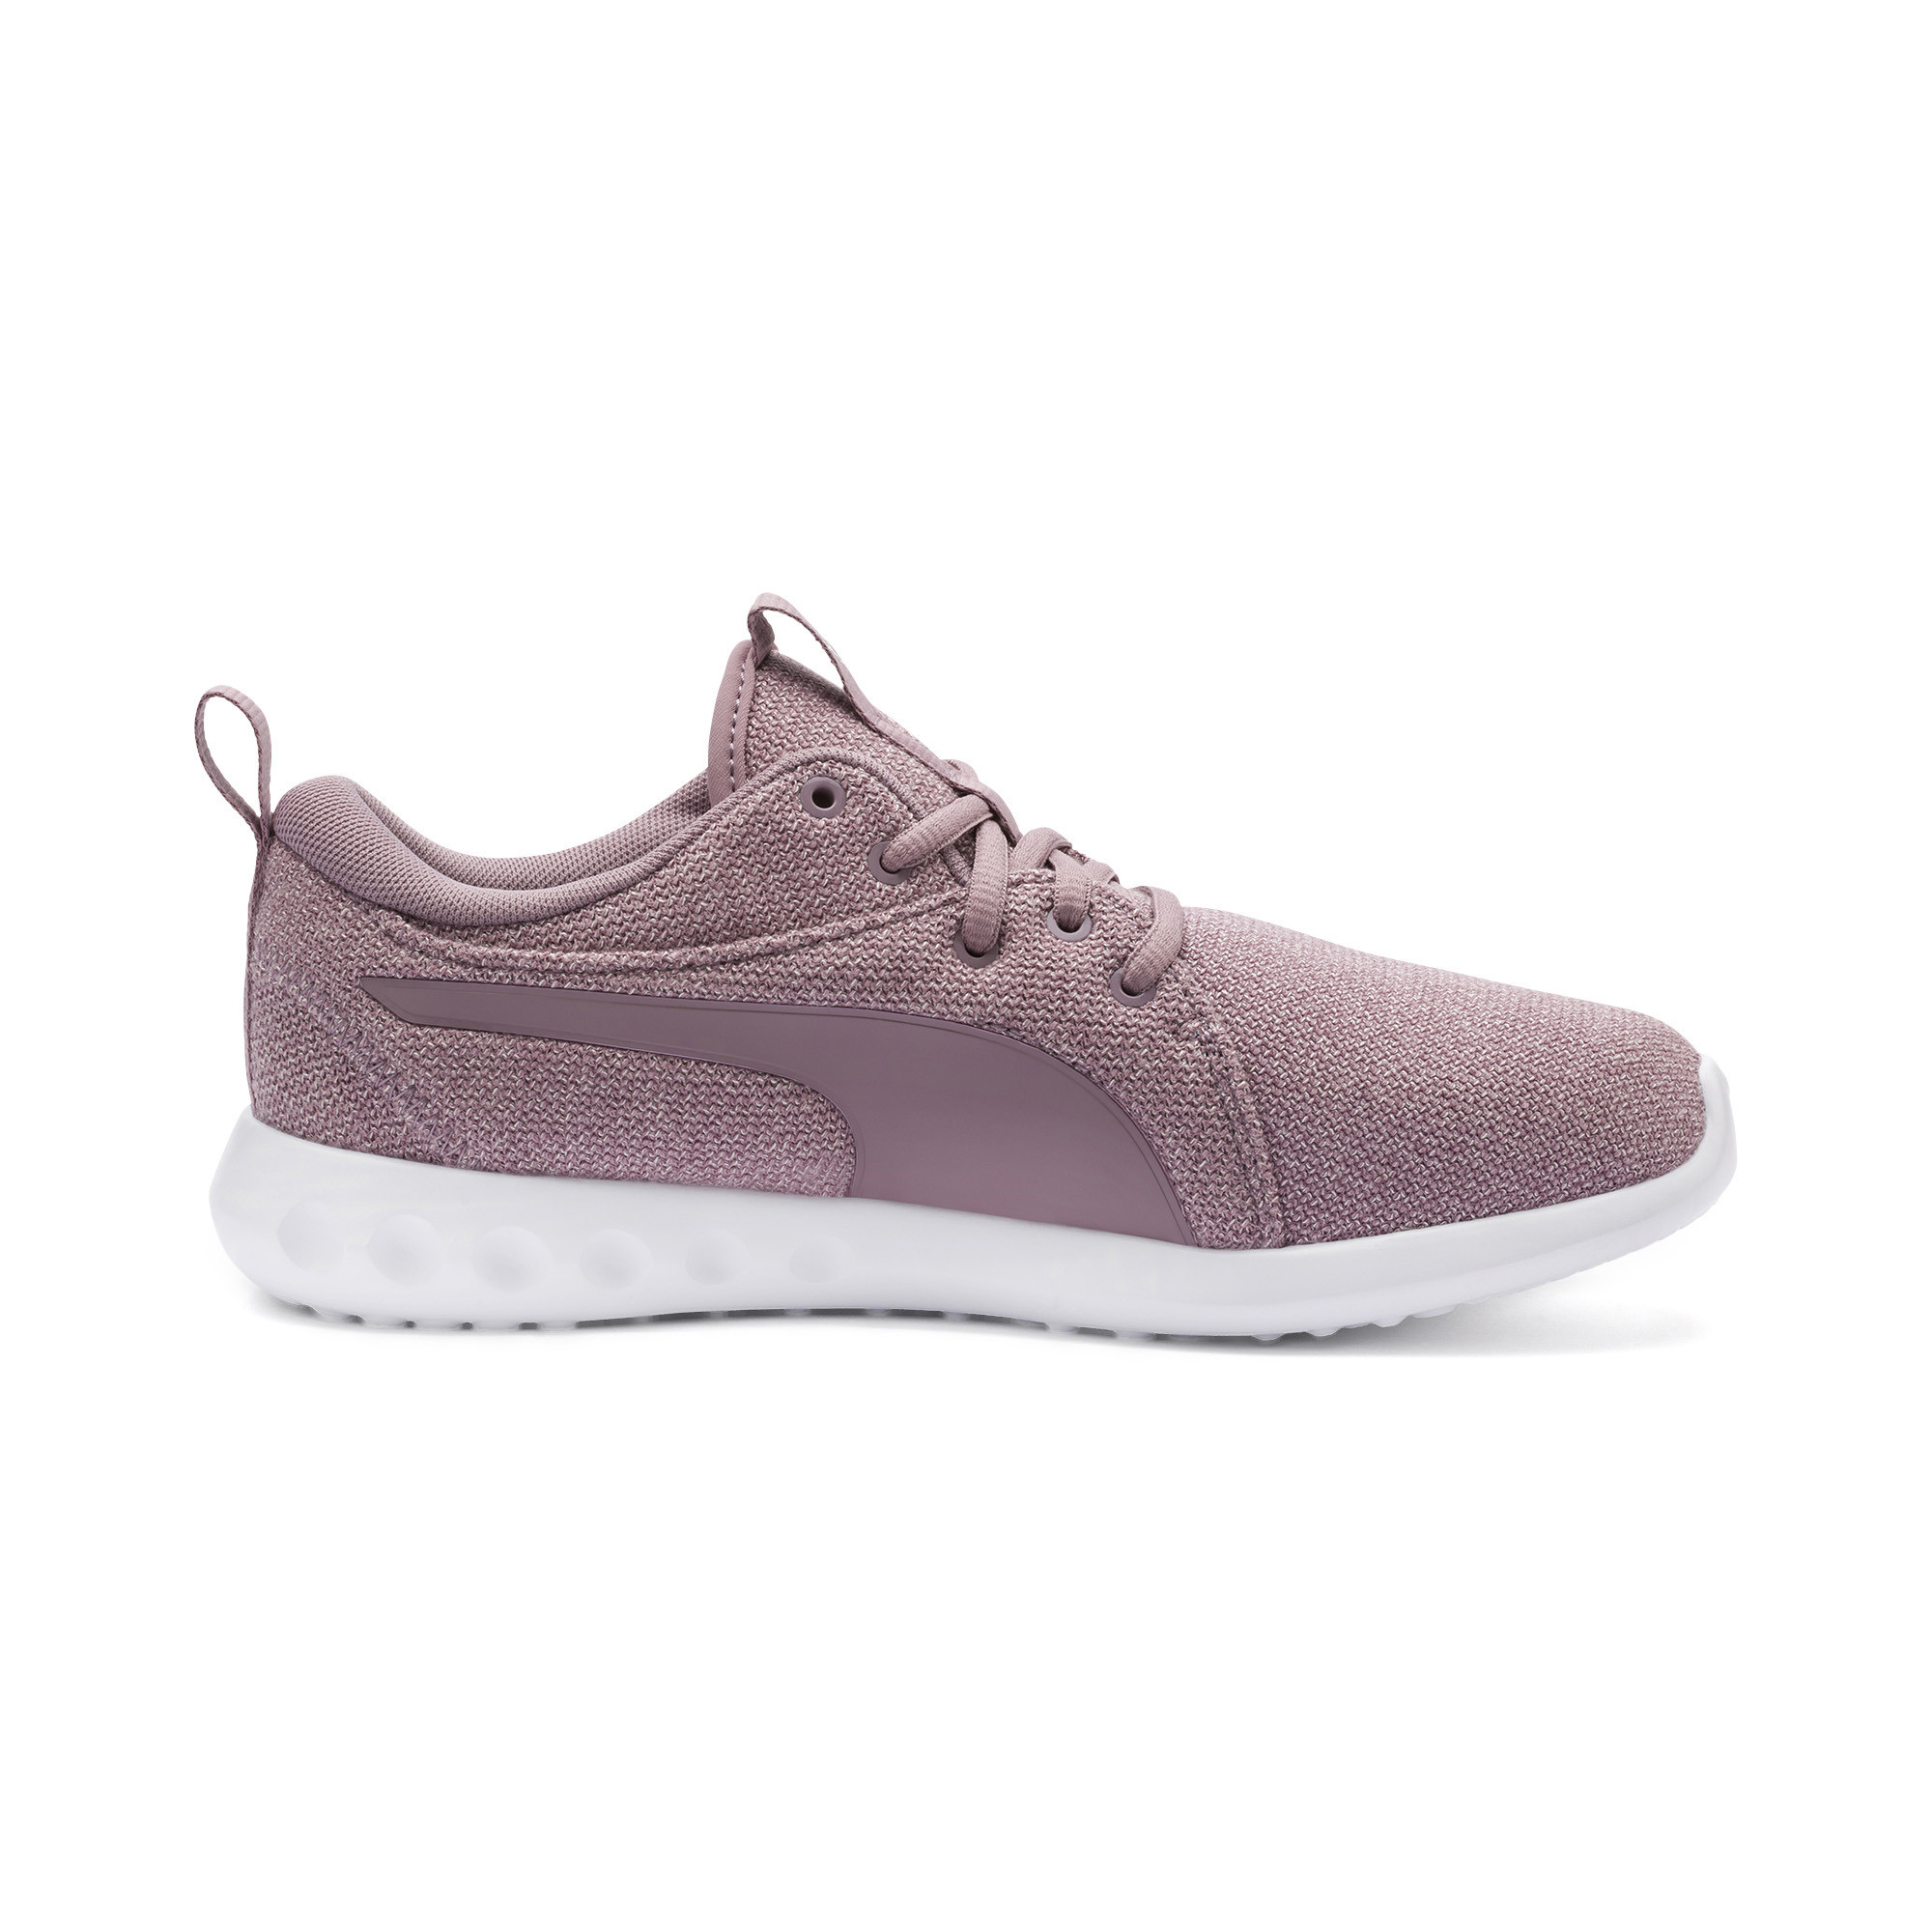 PUMA-Women-039-s-Carson-2-Knit-Running-Shoes thumbnail 16